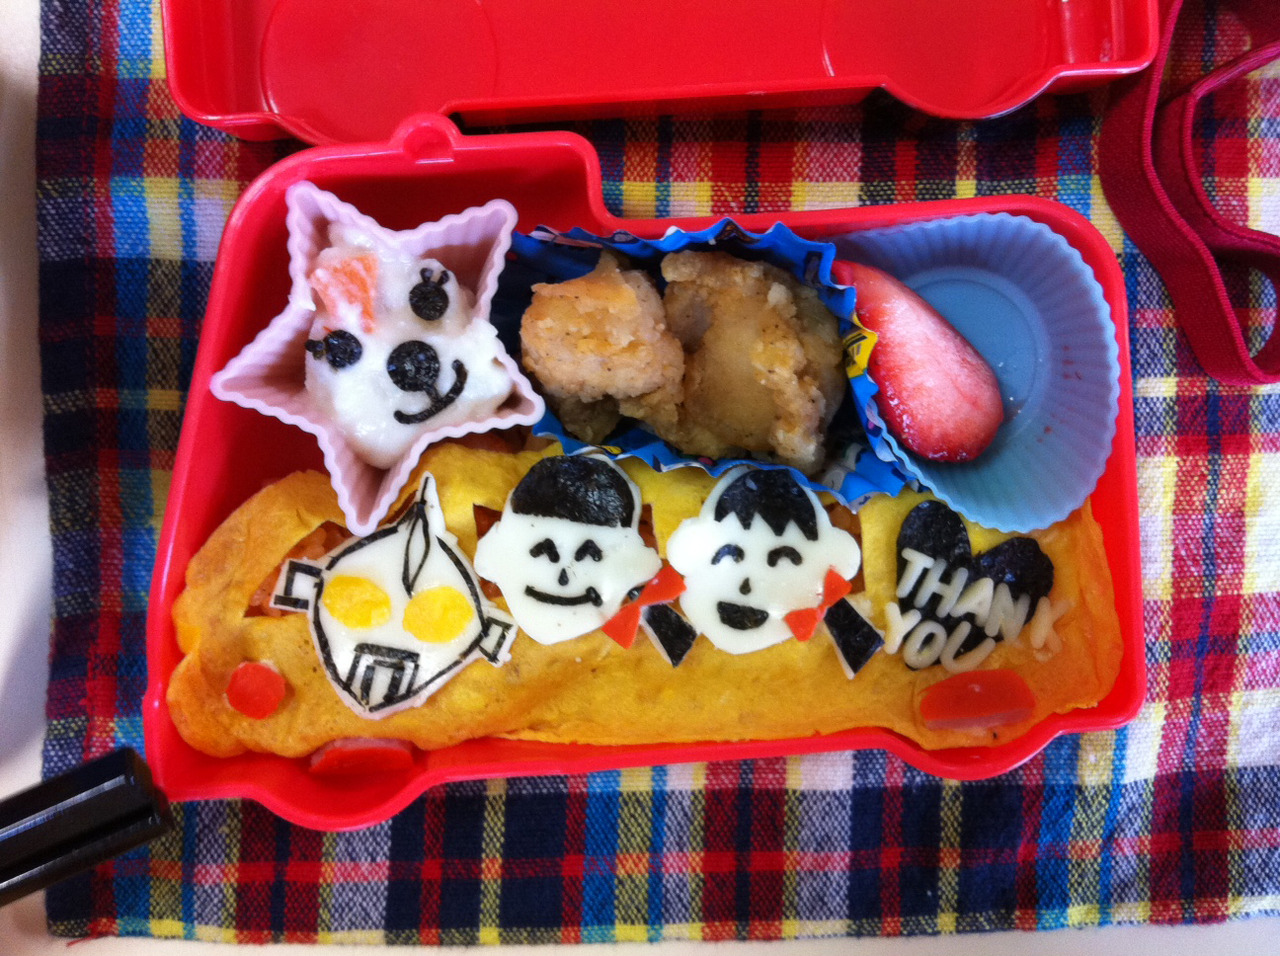 More amazing bento photos. This is me and my partner teacher on anomelette. I think I am the one on the right. The character on the left is Ultra-man. He is one of the most popular characters among Japanese 5 year olds.